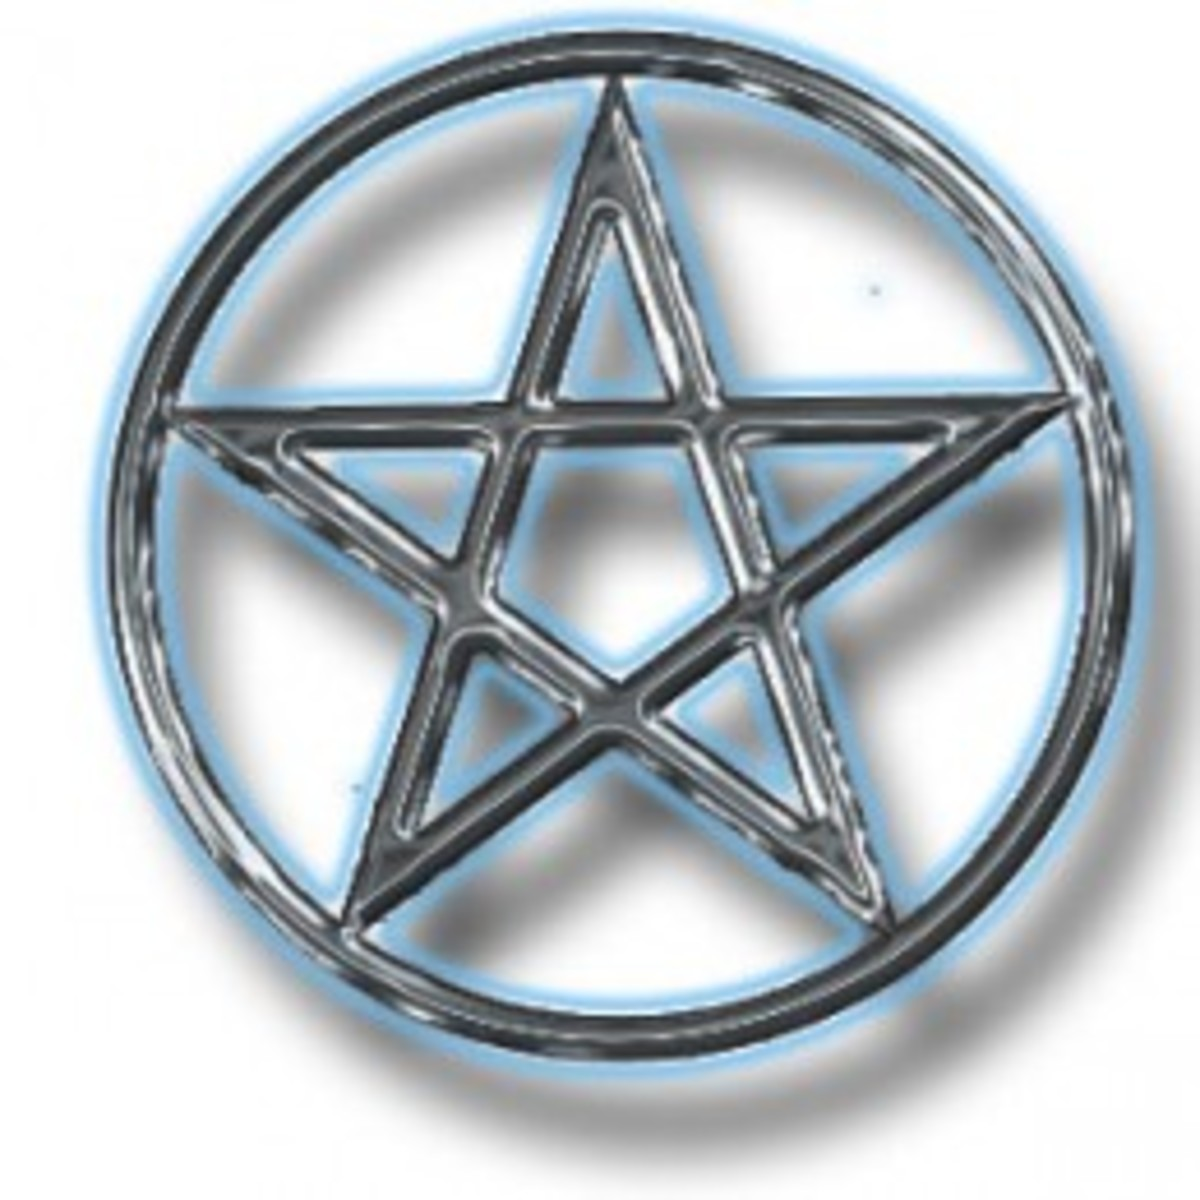 Christian Wicca is an inherent contradiction.